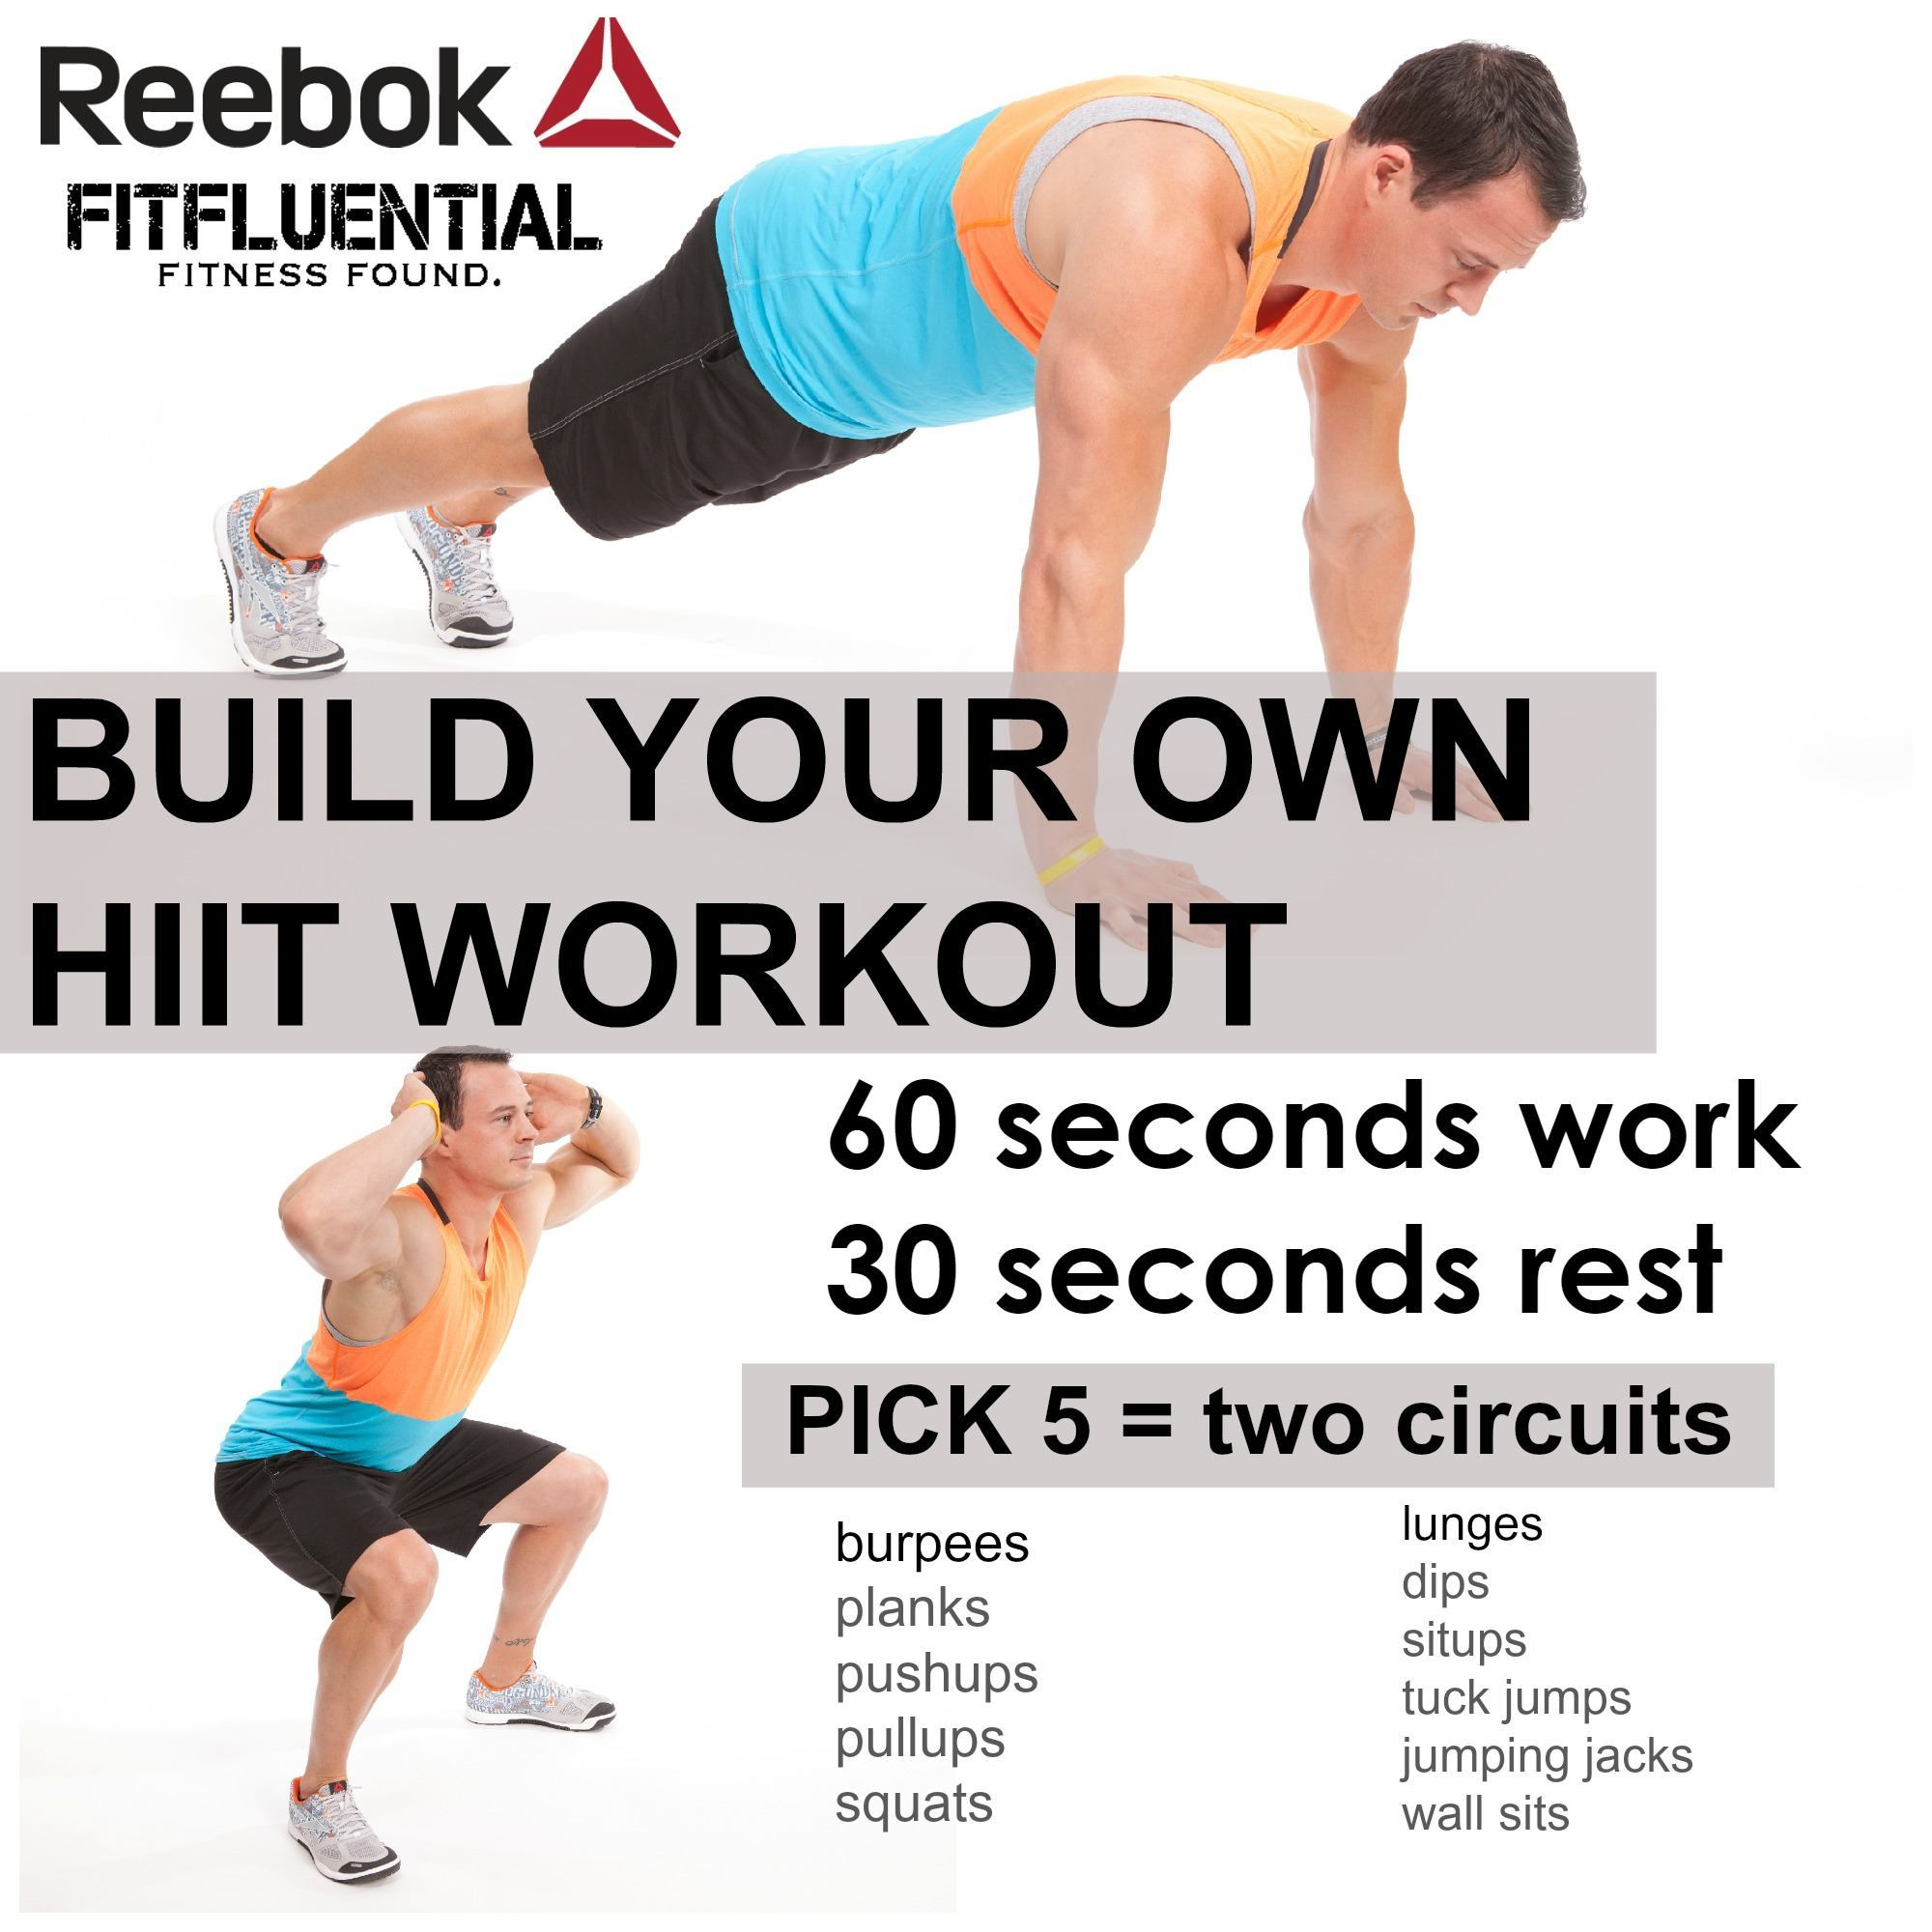 Photo: Reebok and FitFluential